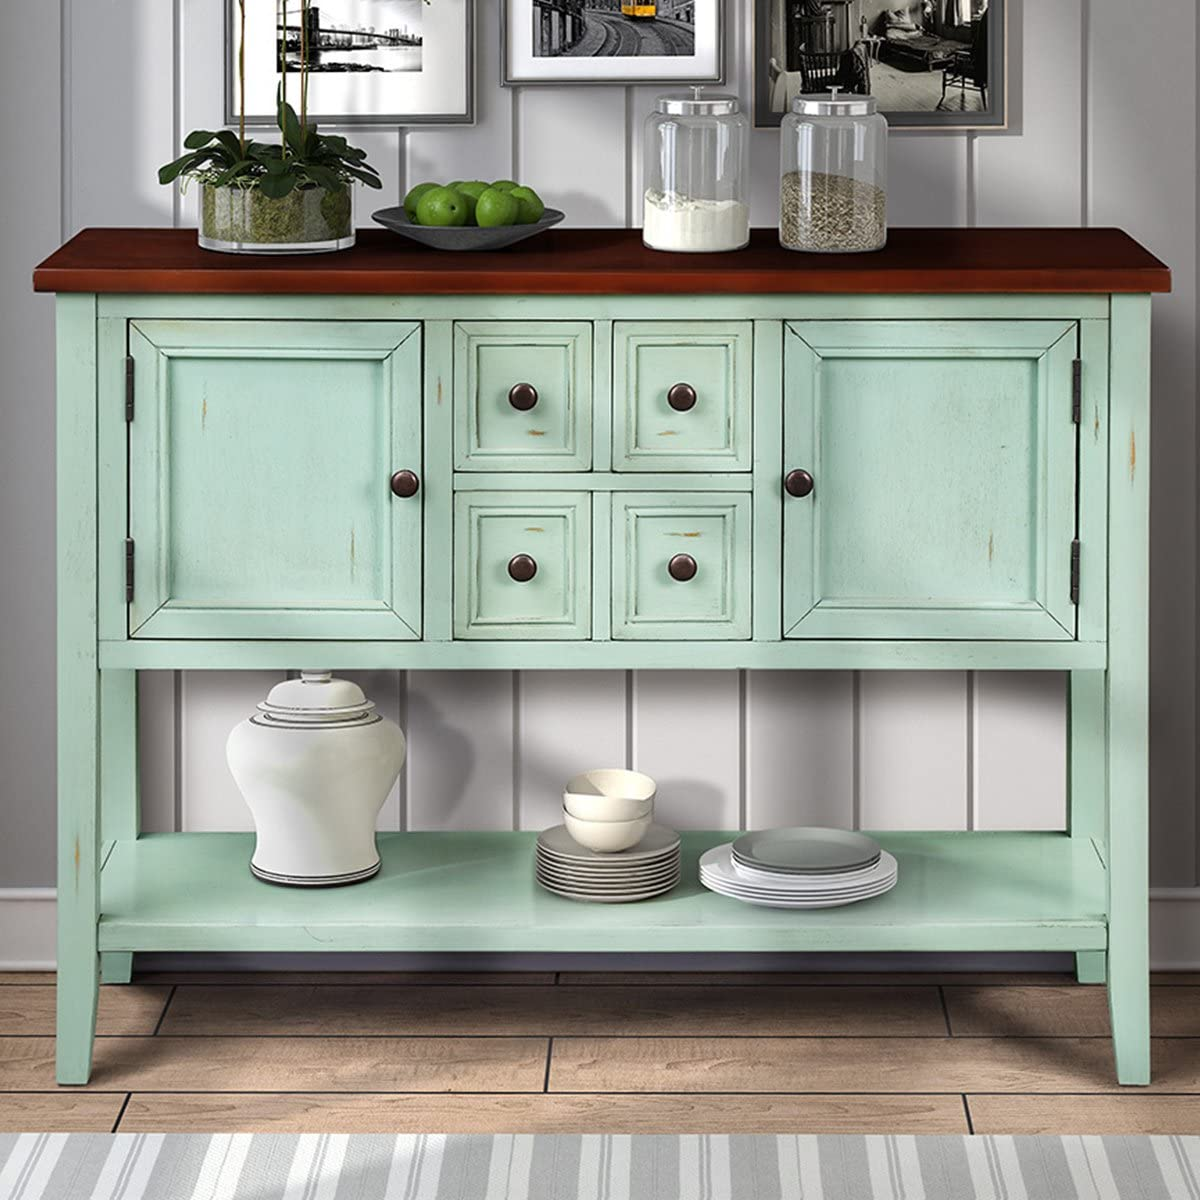 34 Inch Antique Console Table Julyfox 46 Inch Long Hallway Table With Storage Drawers And Shelf Solid Wood Entryway Sofa Table Heavy Duty For Living Room Office Bar Antique Blue Kitchen Dining